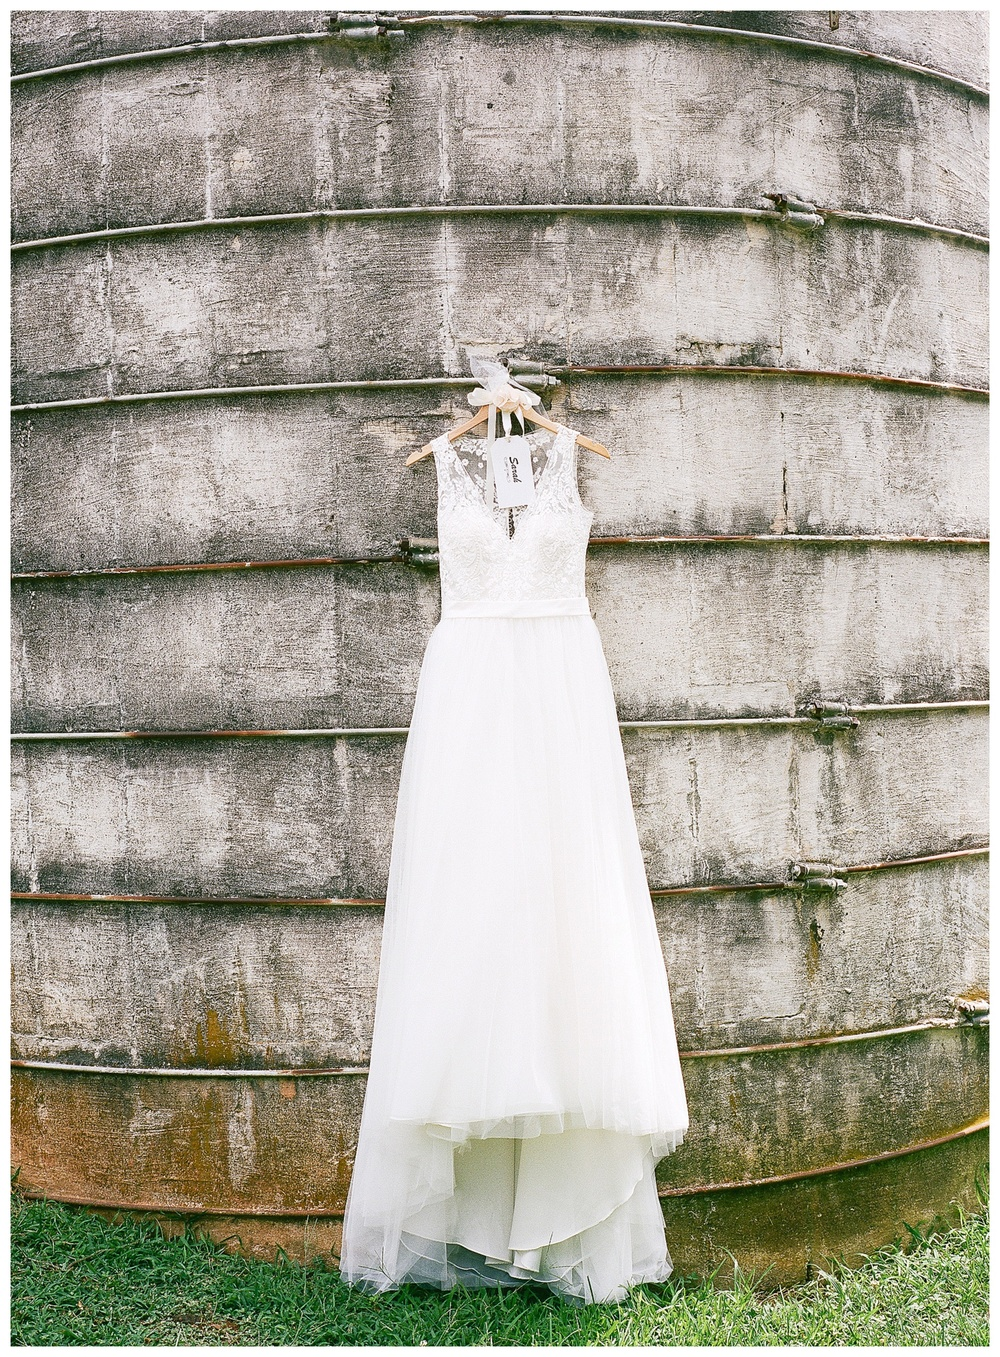 Wedding Dress hanging on silo